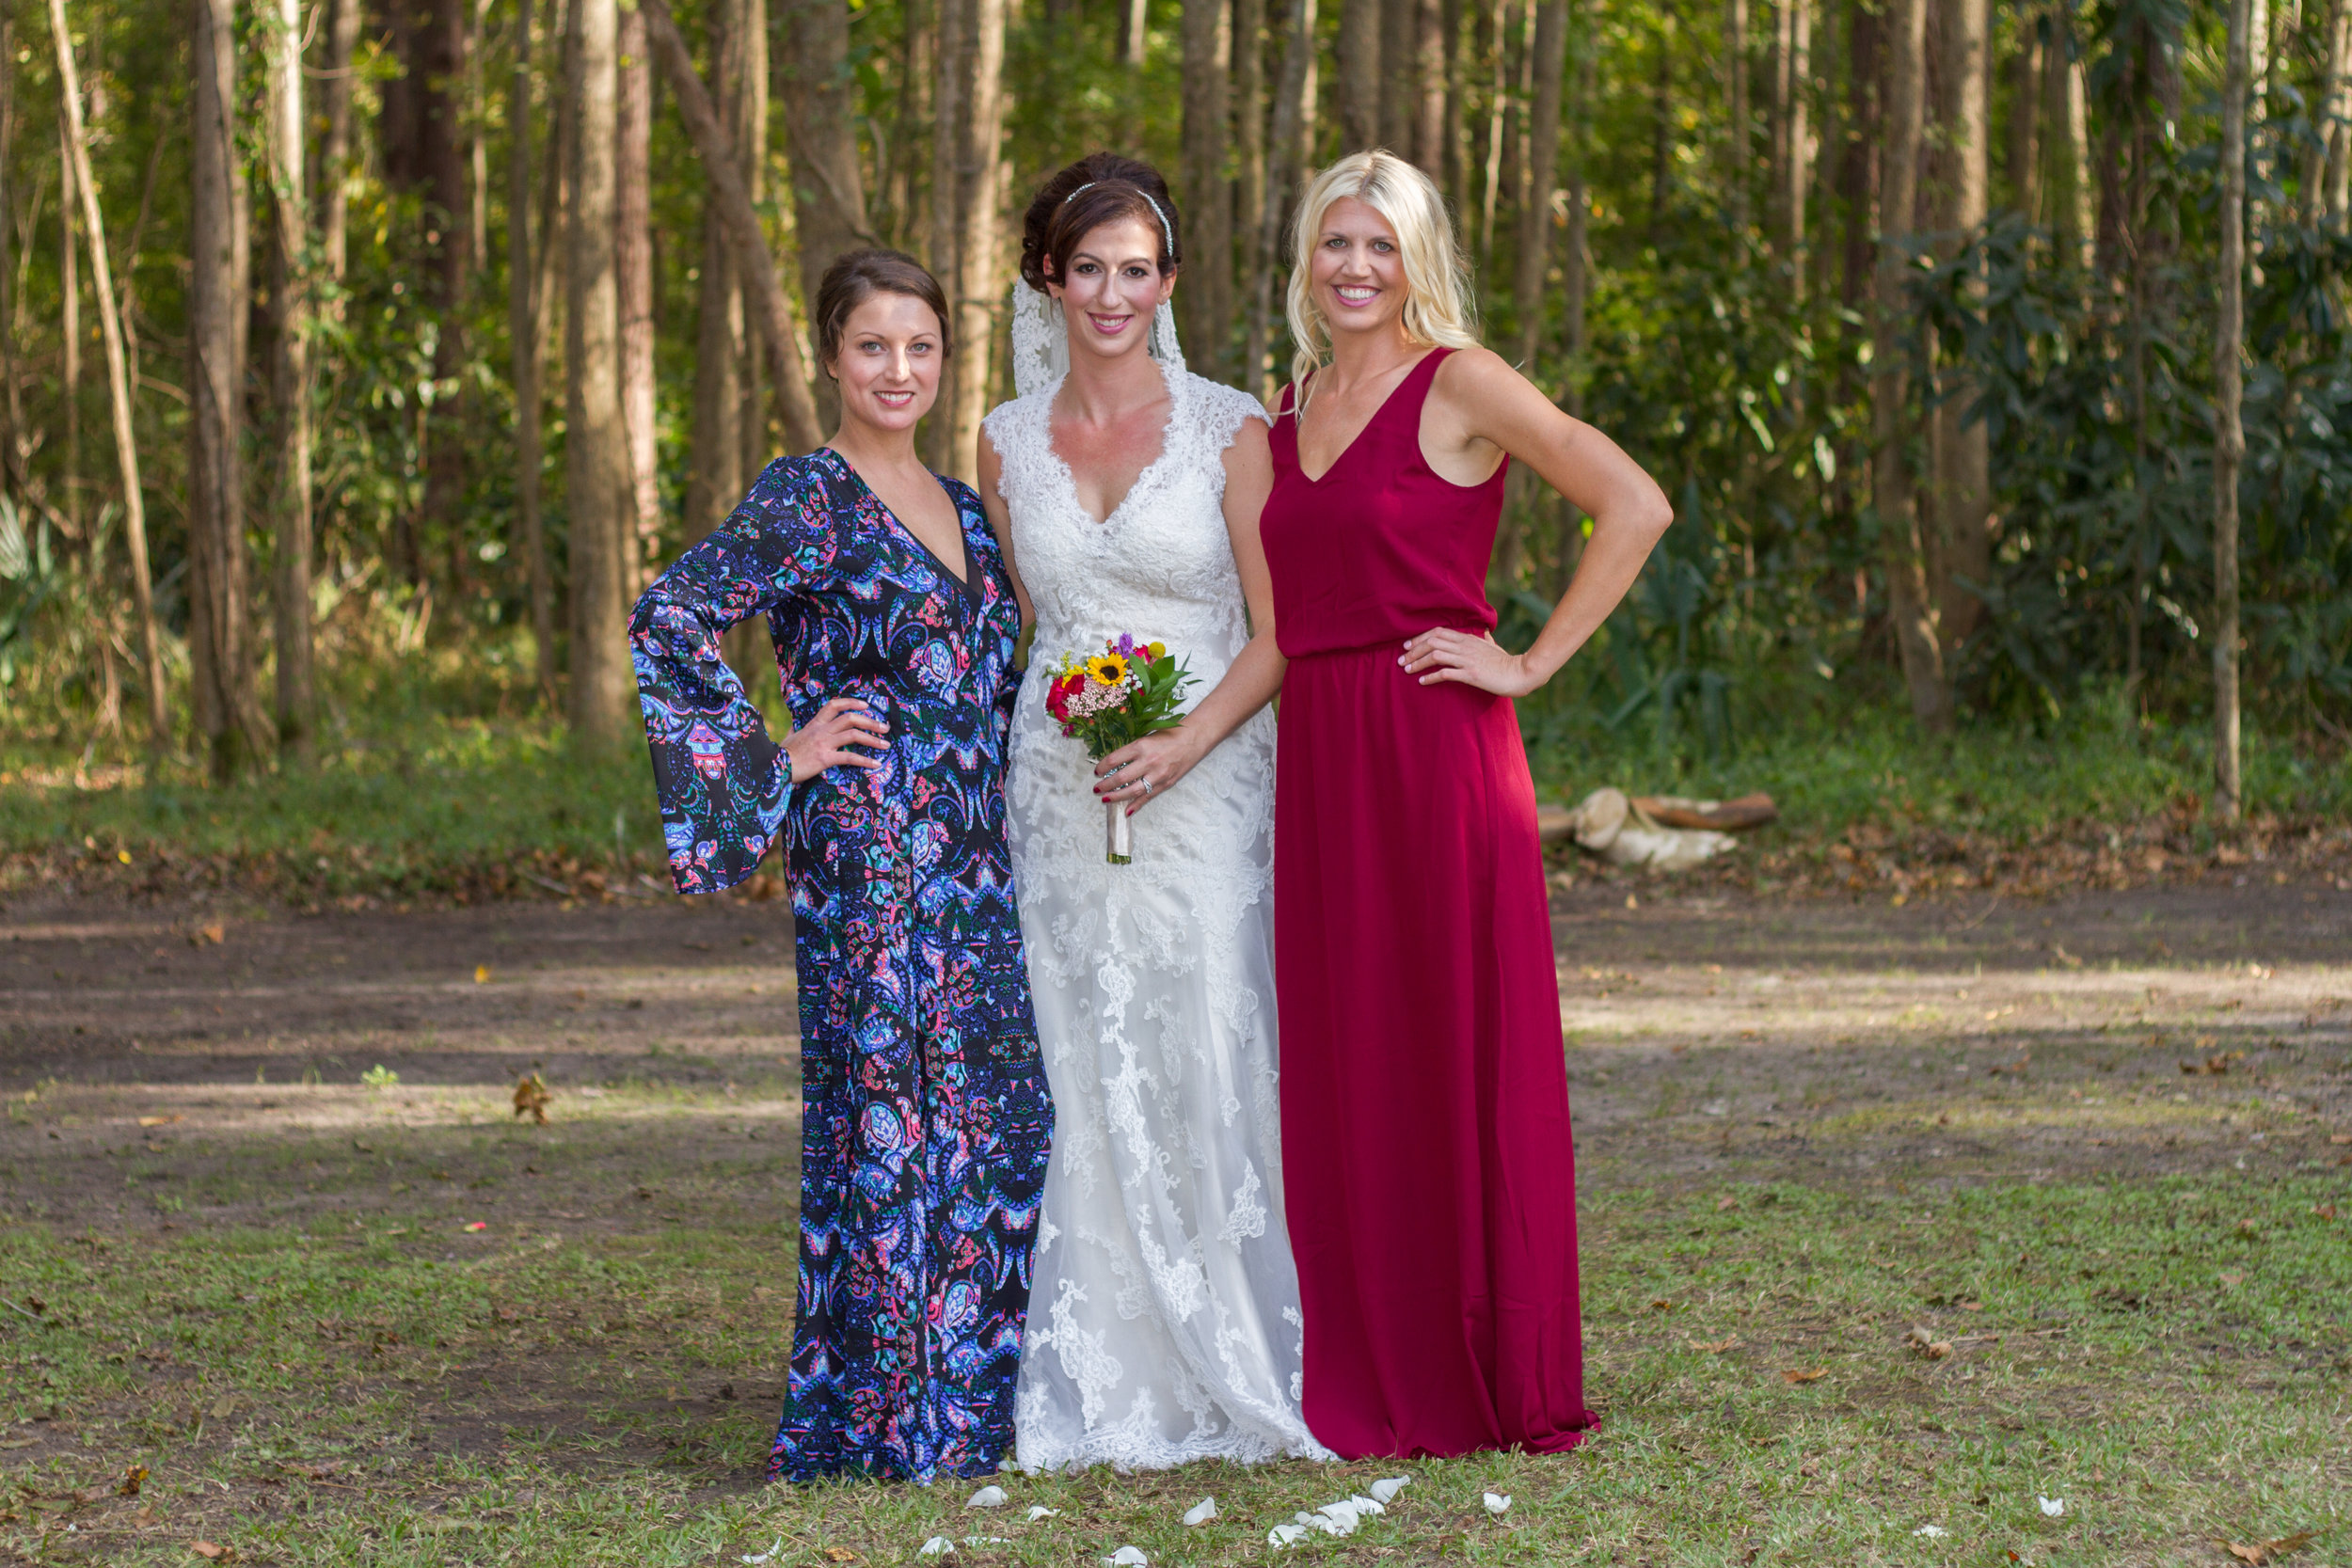 Jacqueline and Shawn Wedding (286 of 597).jpg